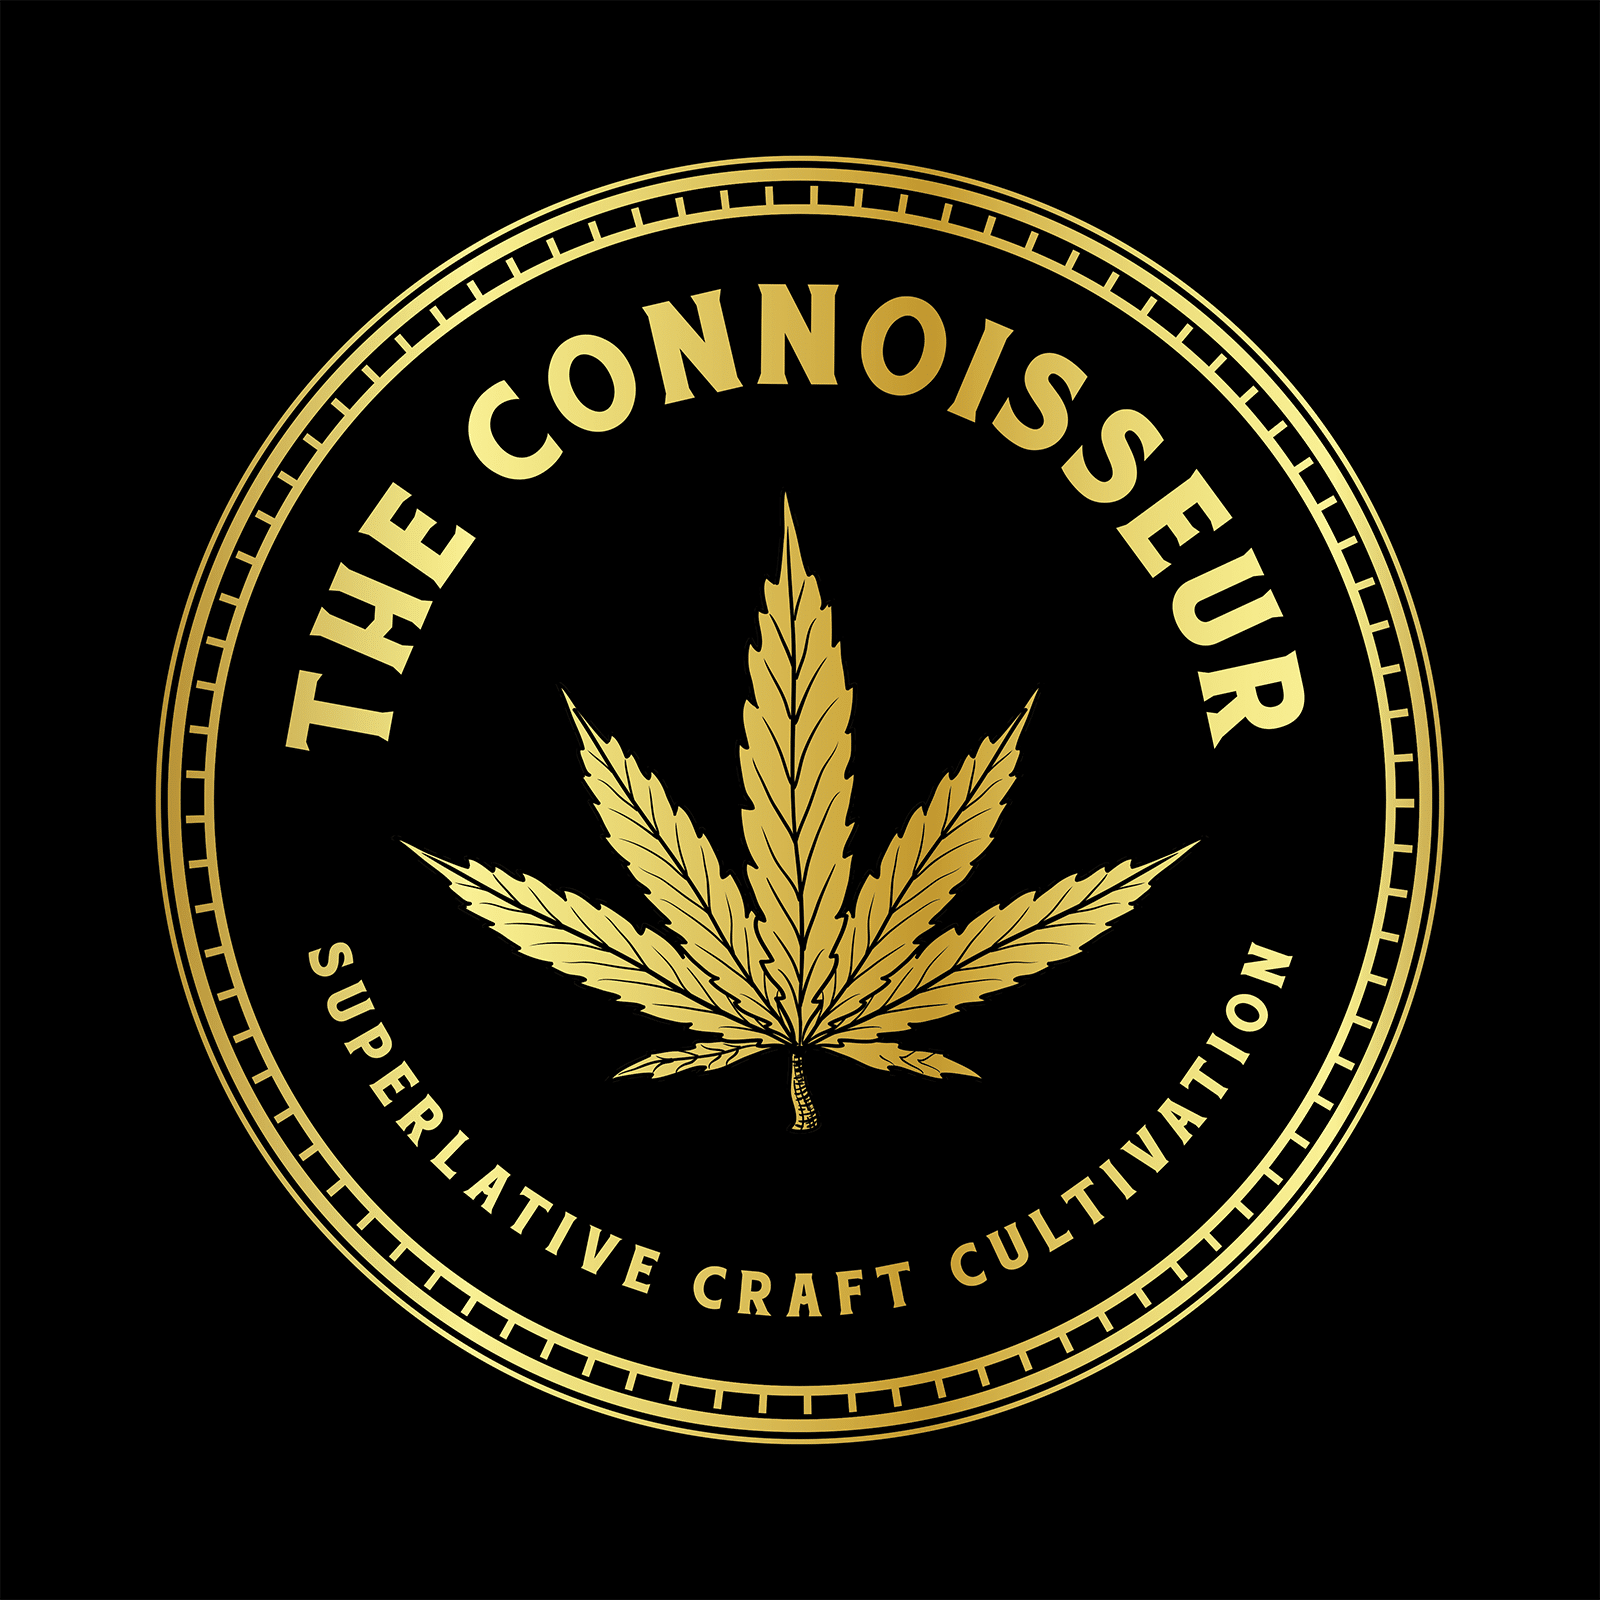 The Connisour Logo